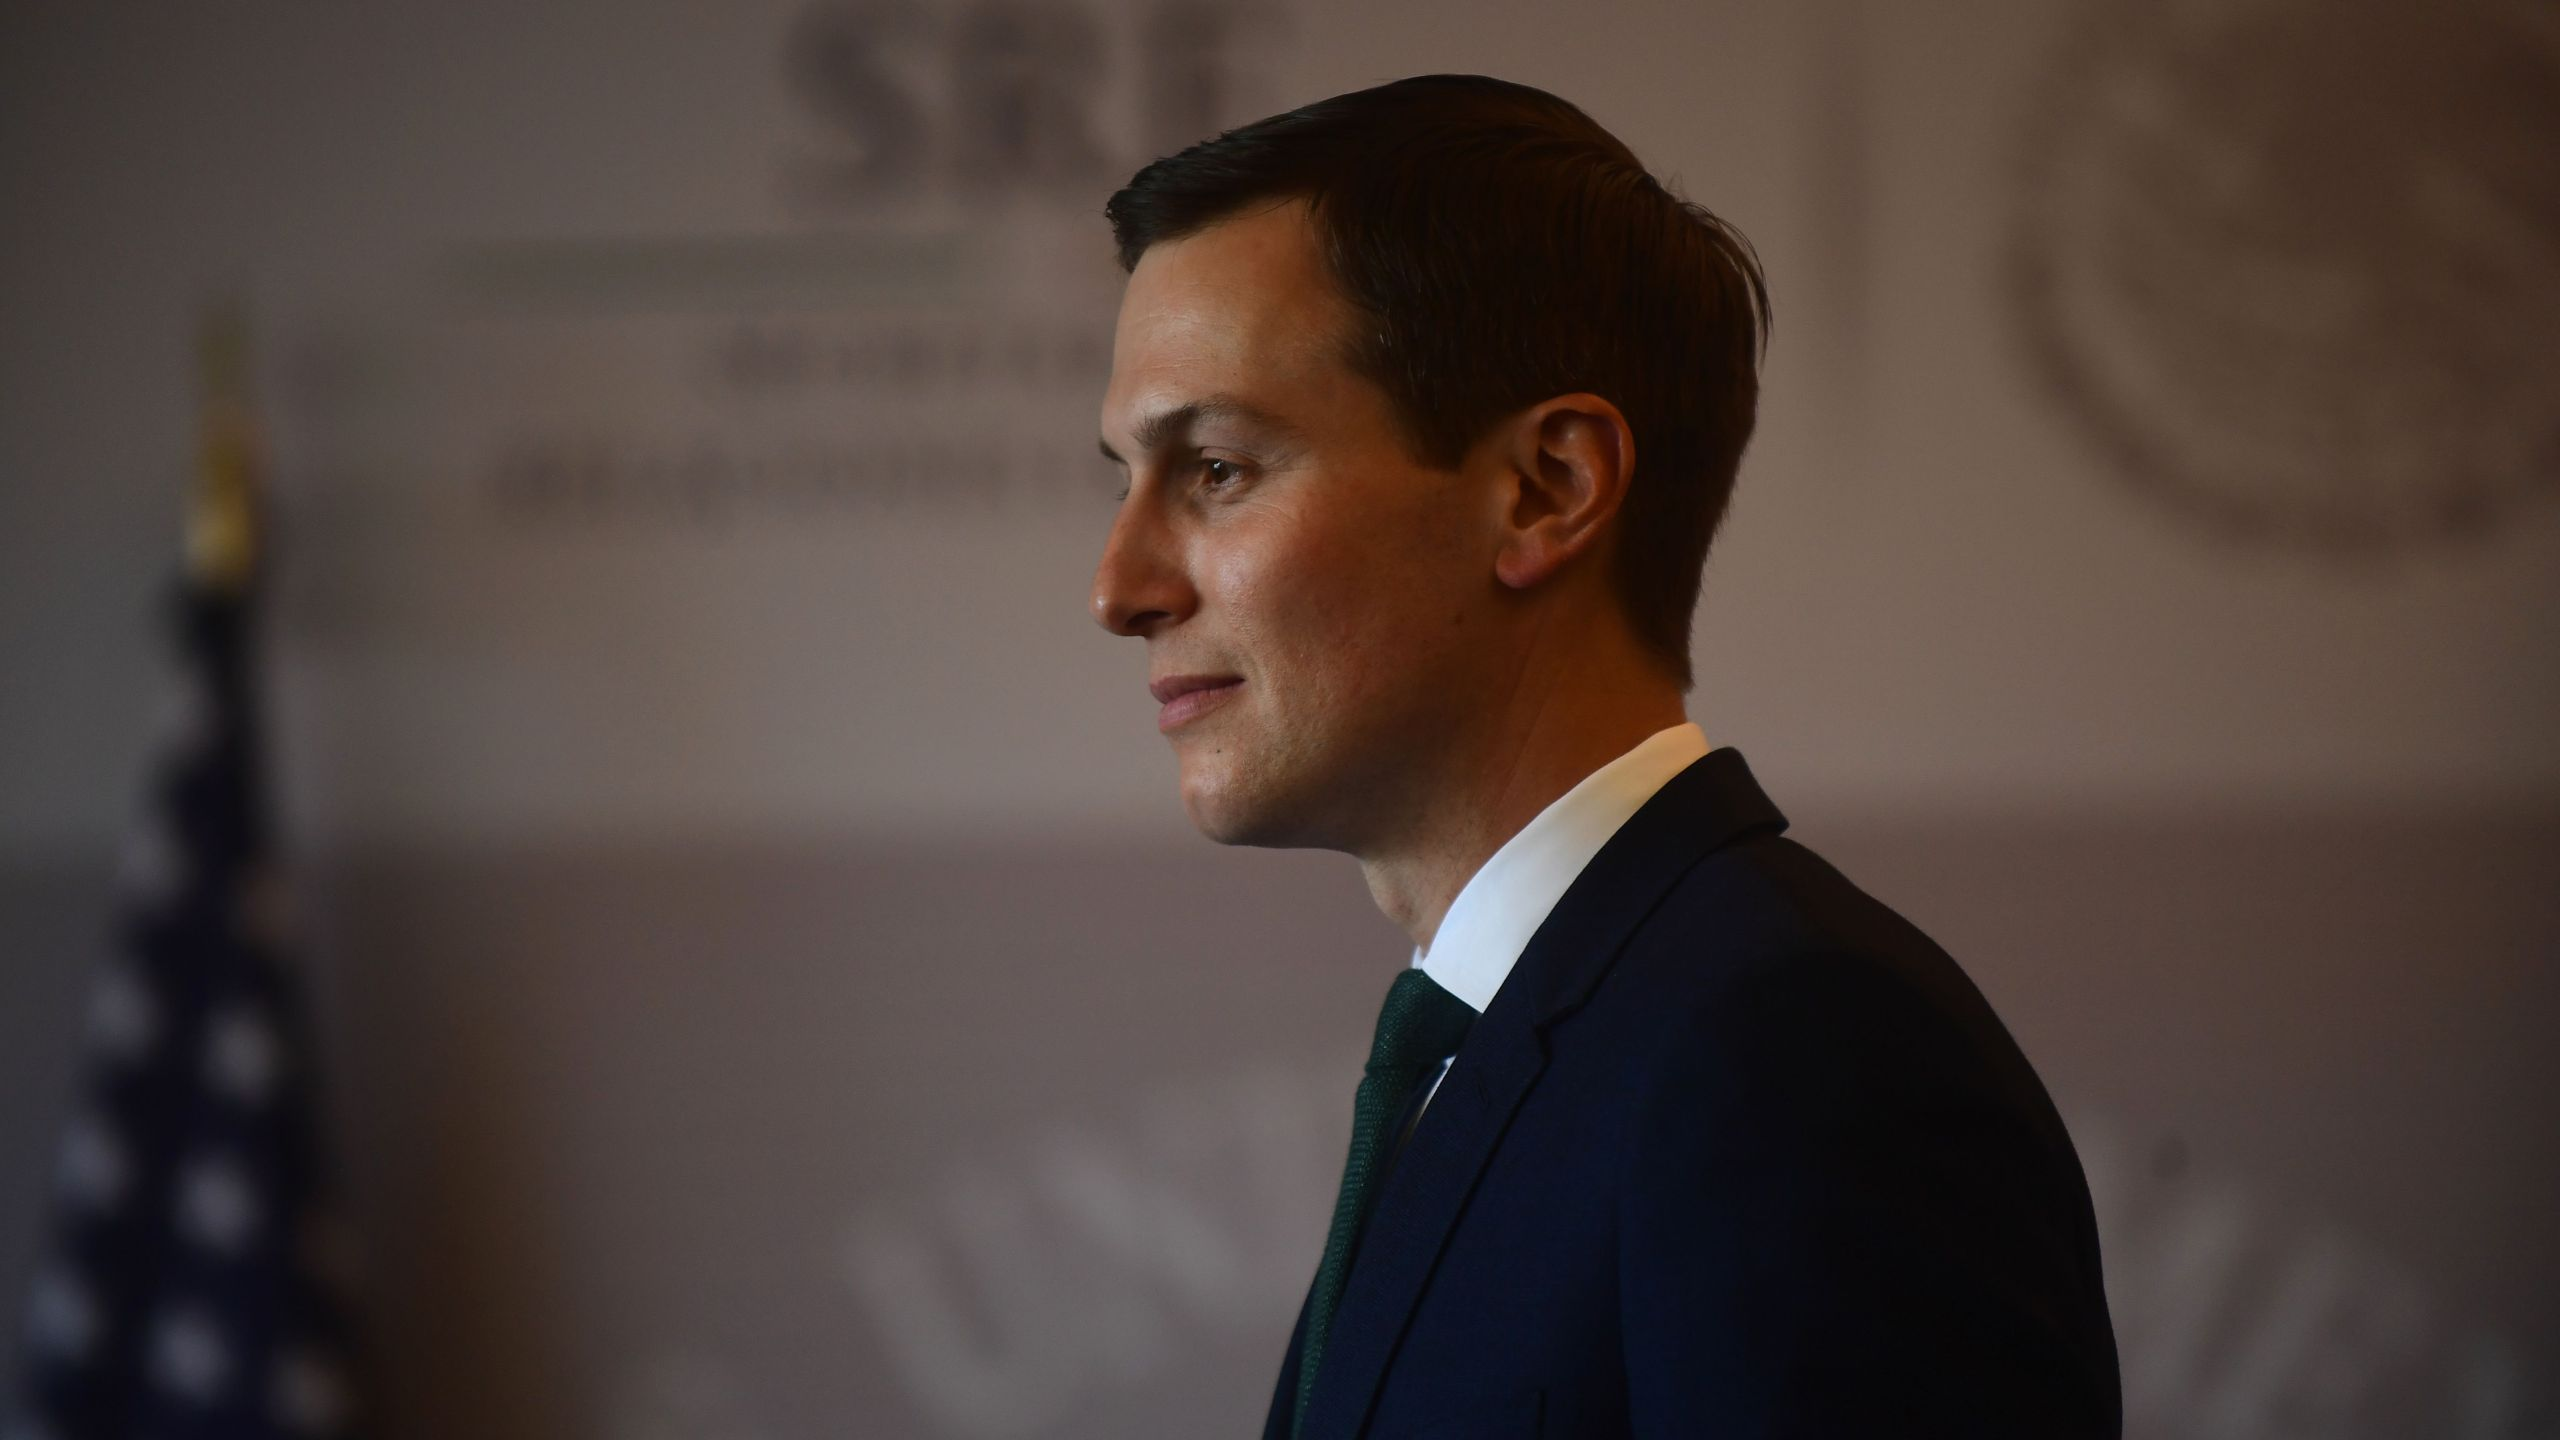 Jared Kushner is pictured at the Foreign Ministry in Mexico City, where he arrived to hold a meeting with Mexico's Foreign Minister Luis Videgaray on July 13, 2018. (Credit: PEDRO PARDO/AFP/Getty Images)